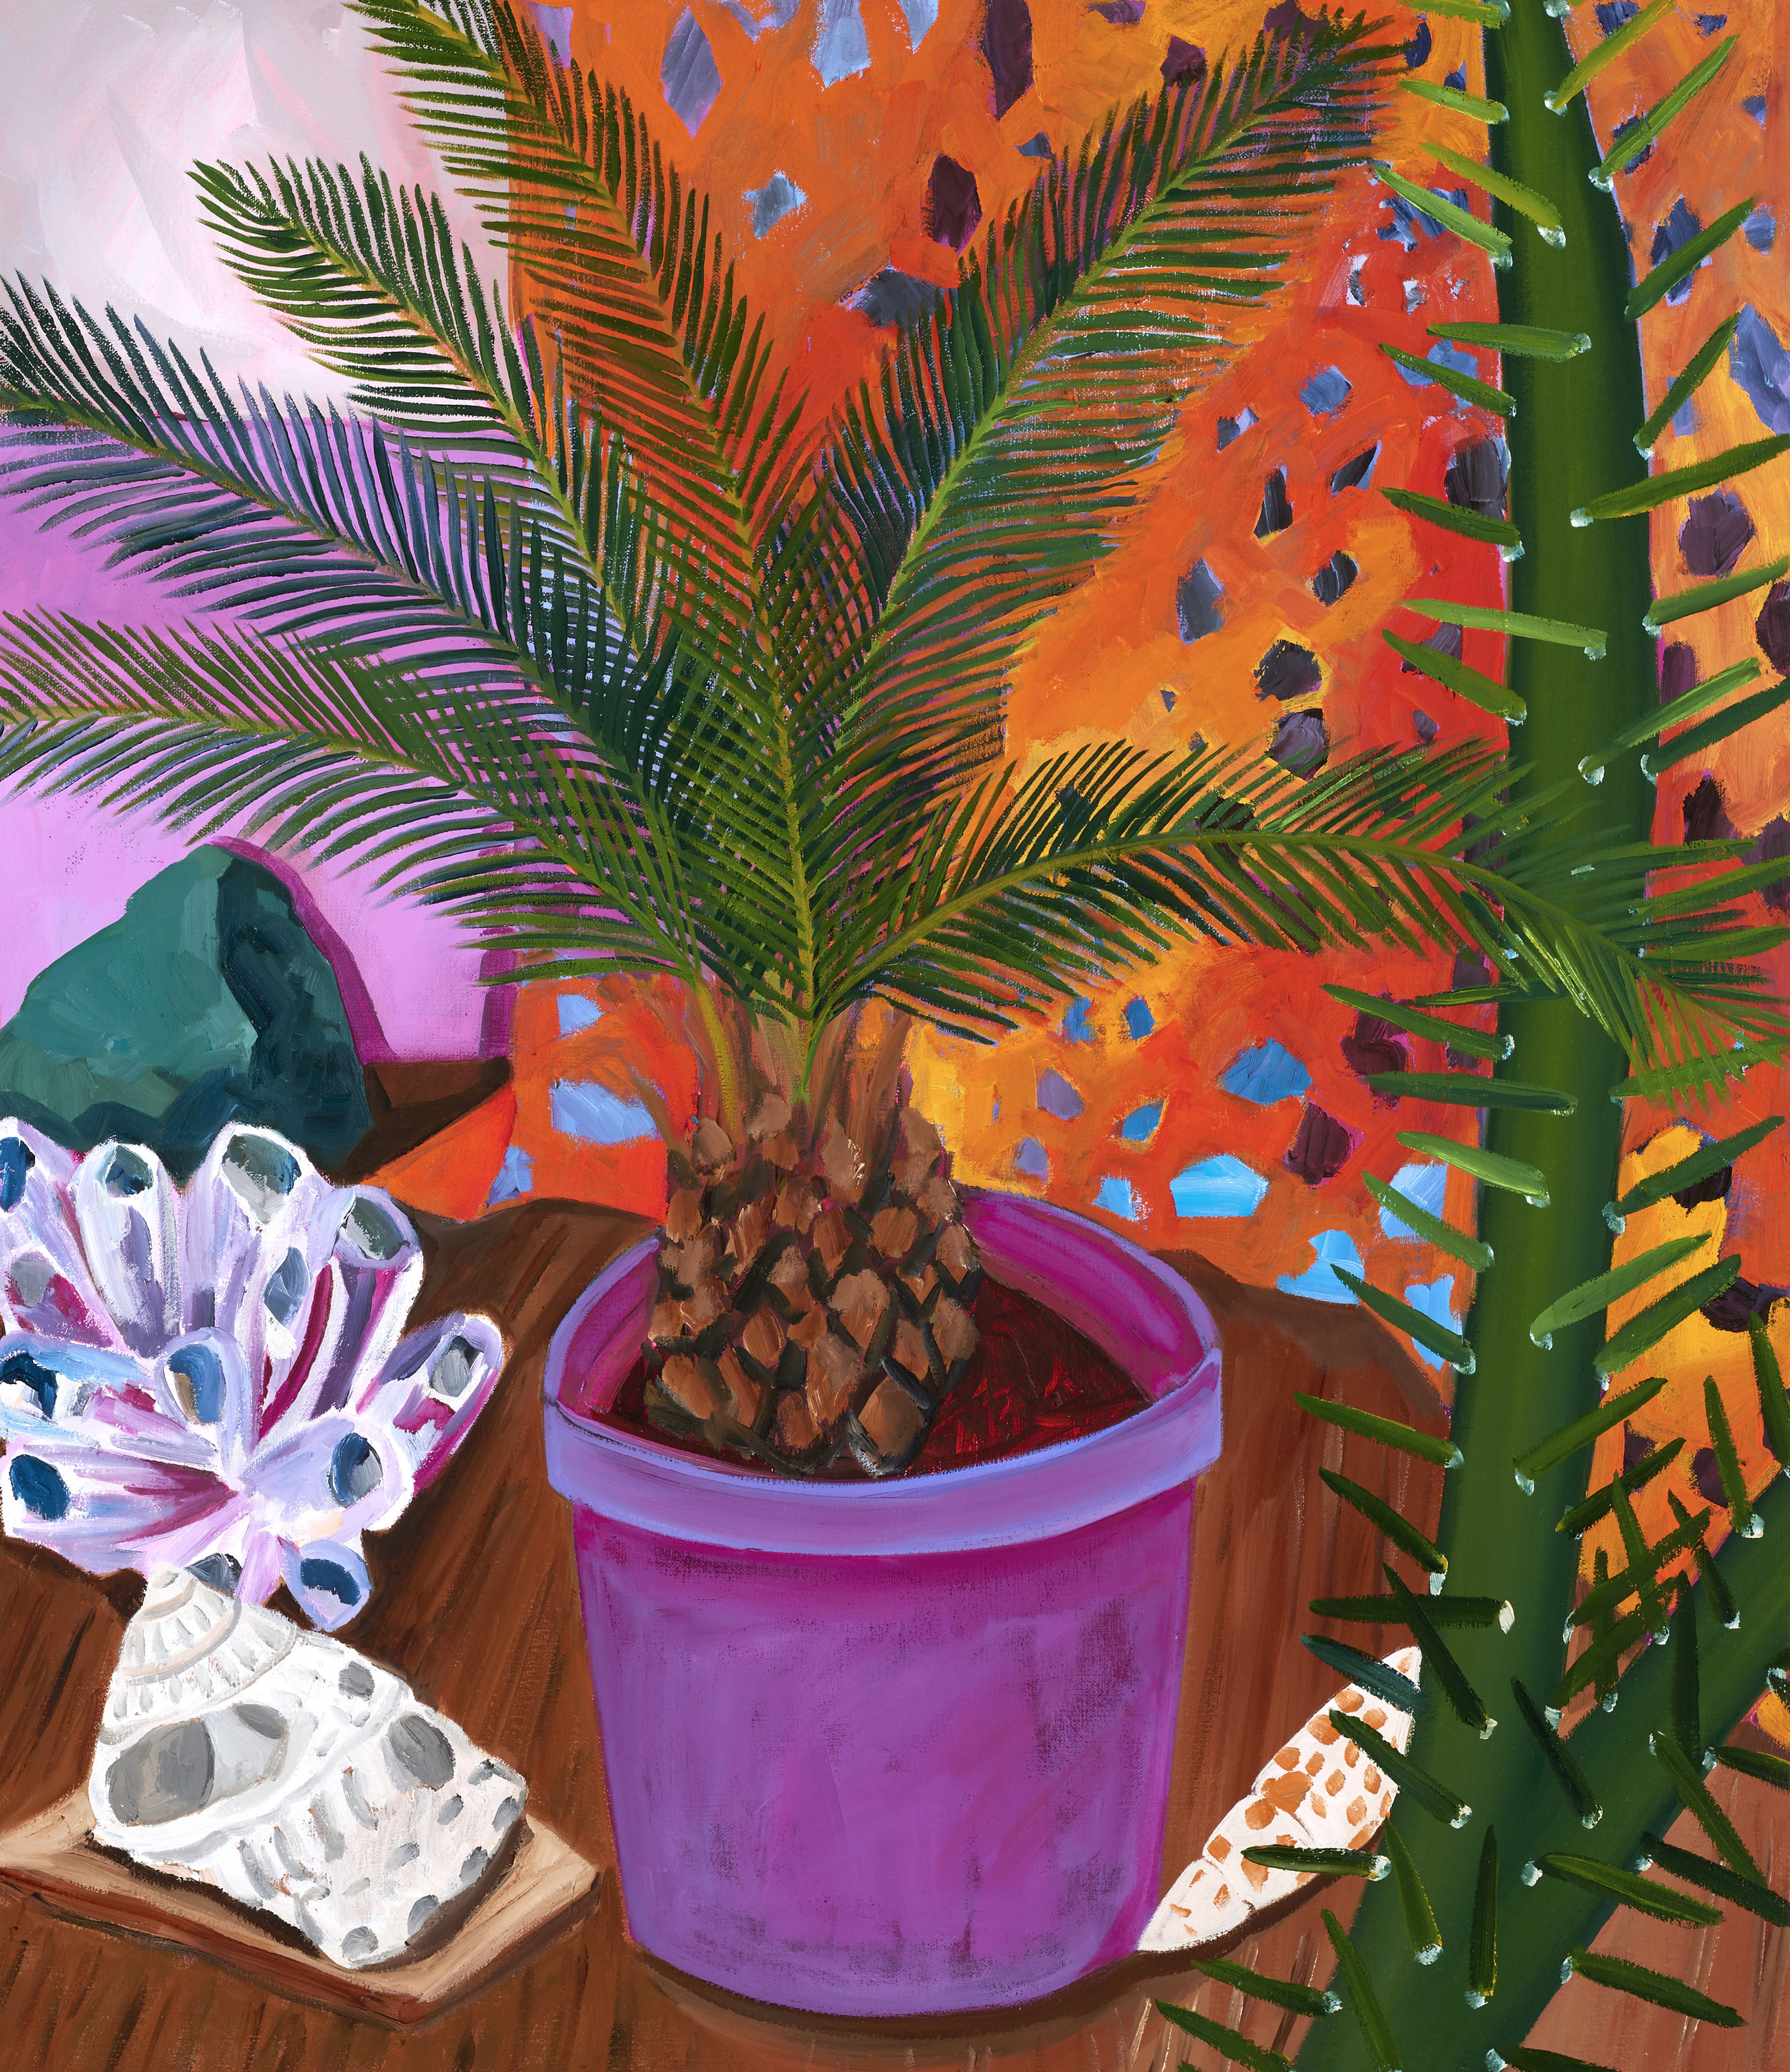 Anna Valdez  Potted Palm , 2019 oil on canvas 28h x 24w in